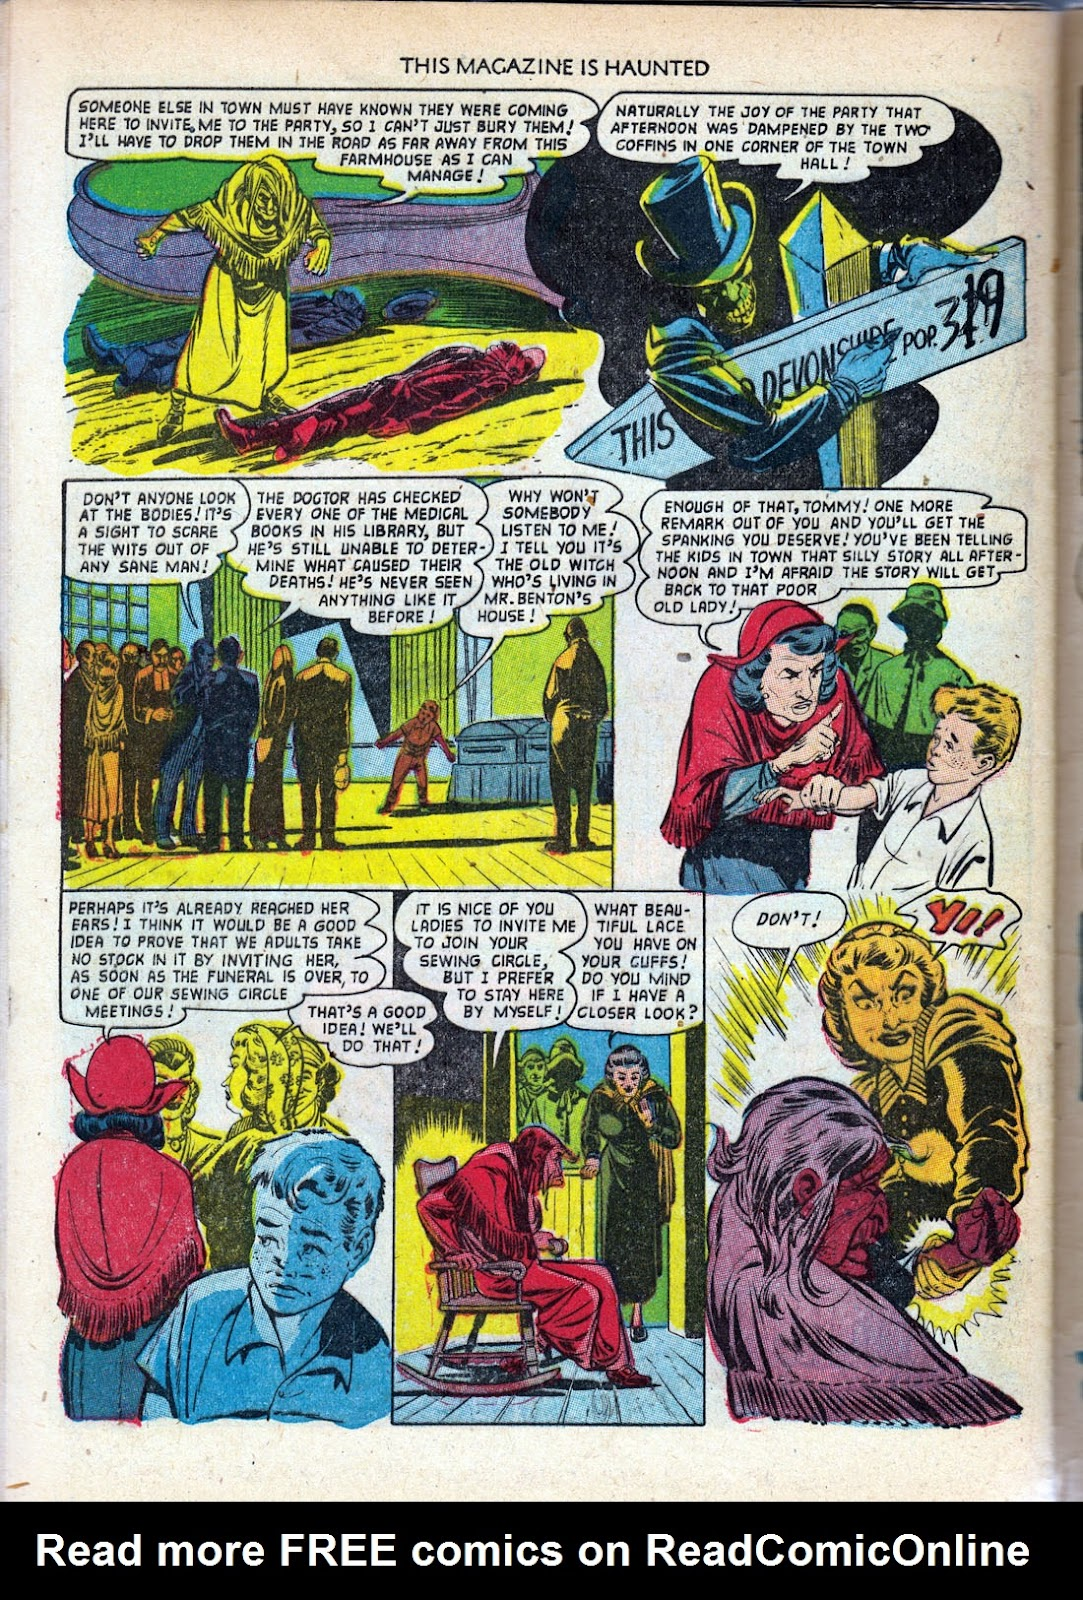 Read online This Magazine Is Haunted comic -  Issue #11 - 32